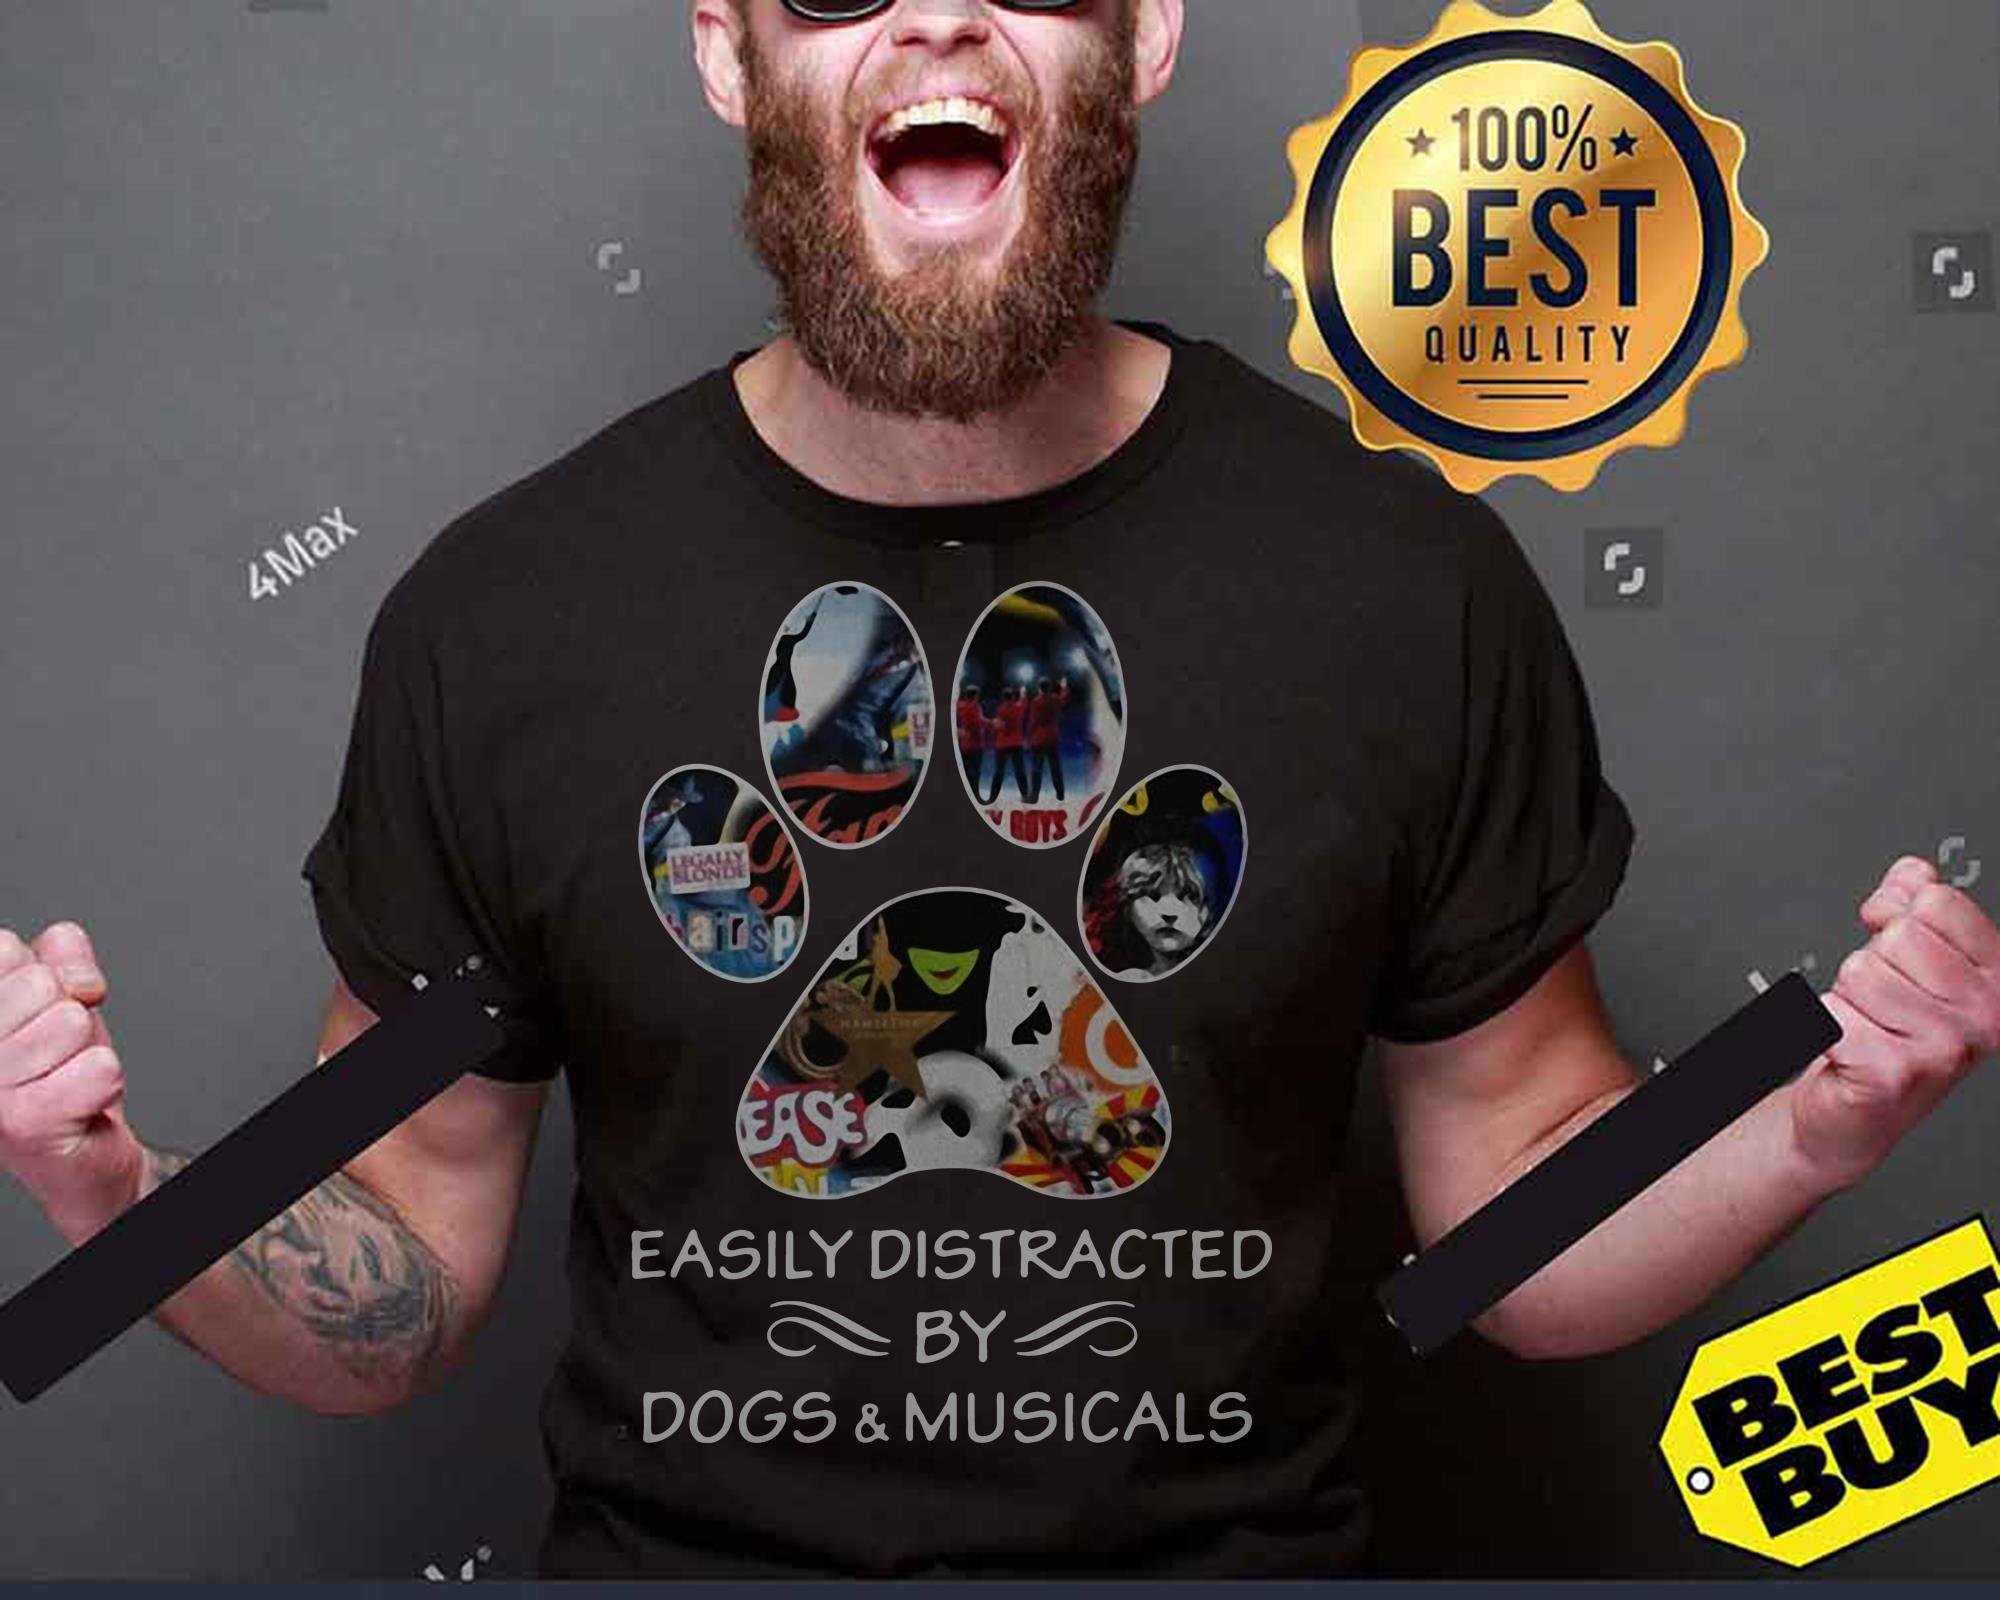 Broadway easily distracted by dogs and musicals tank top